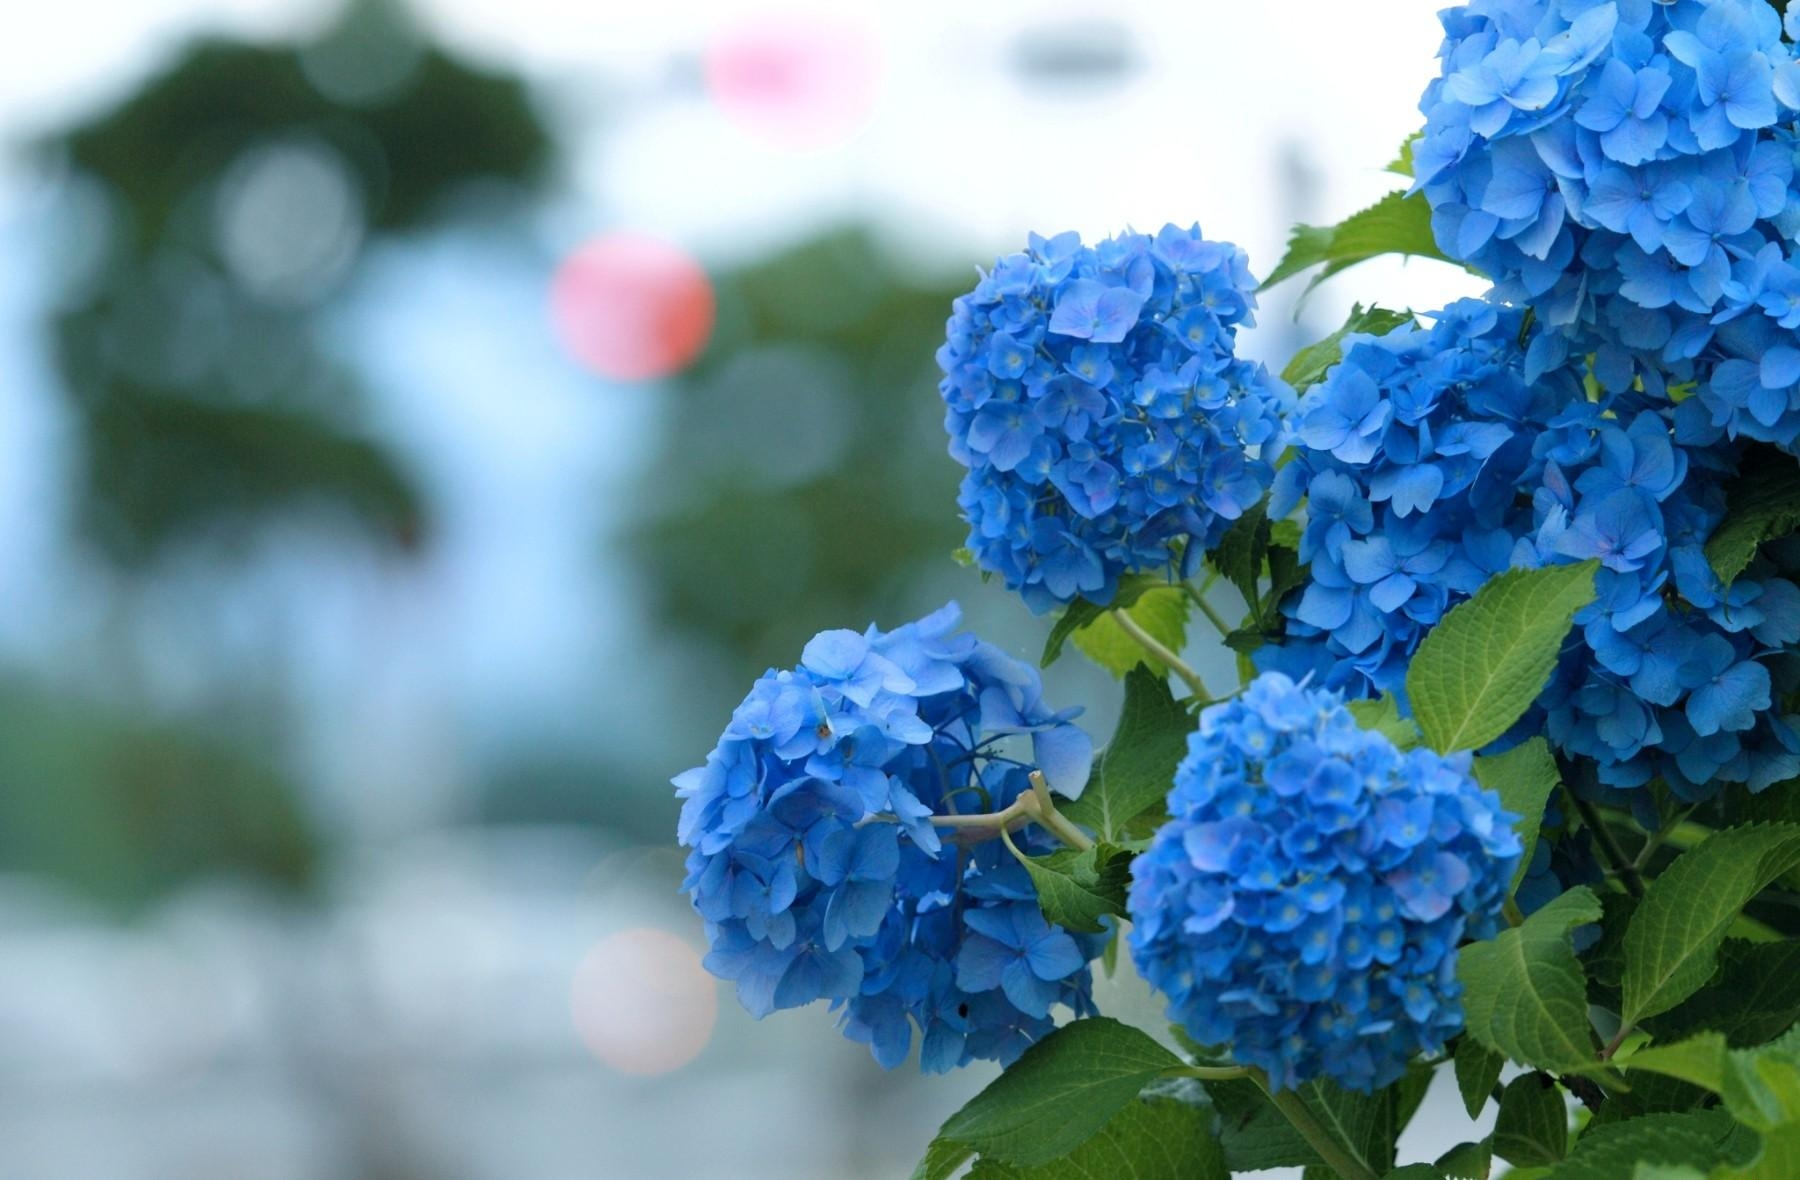 Hd Hydrangea Wallpapers 1800x1180 | BsnSCB Gallery